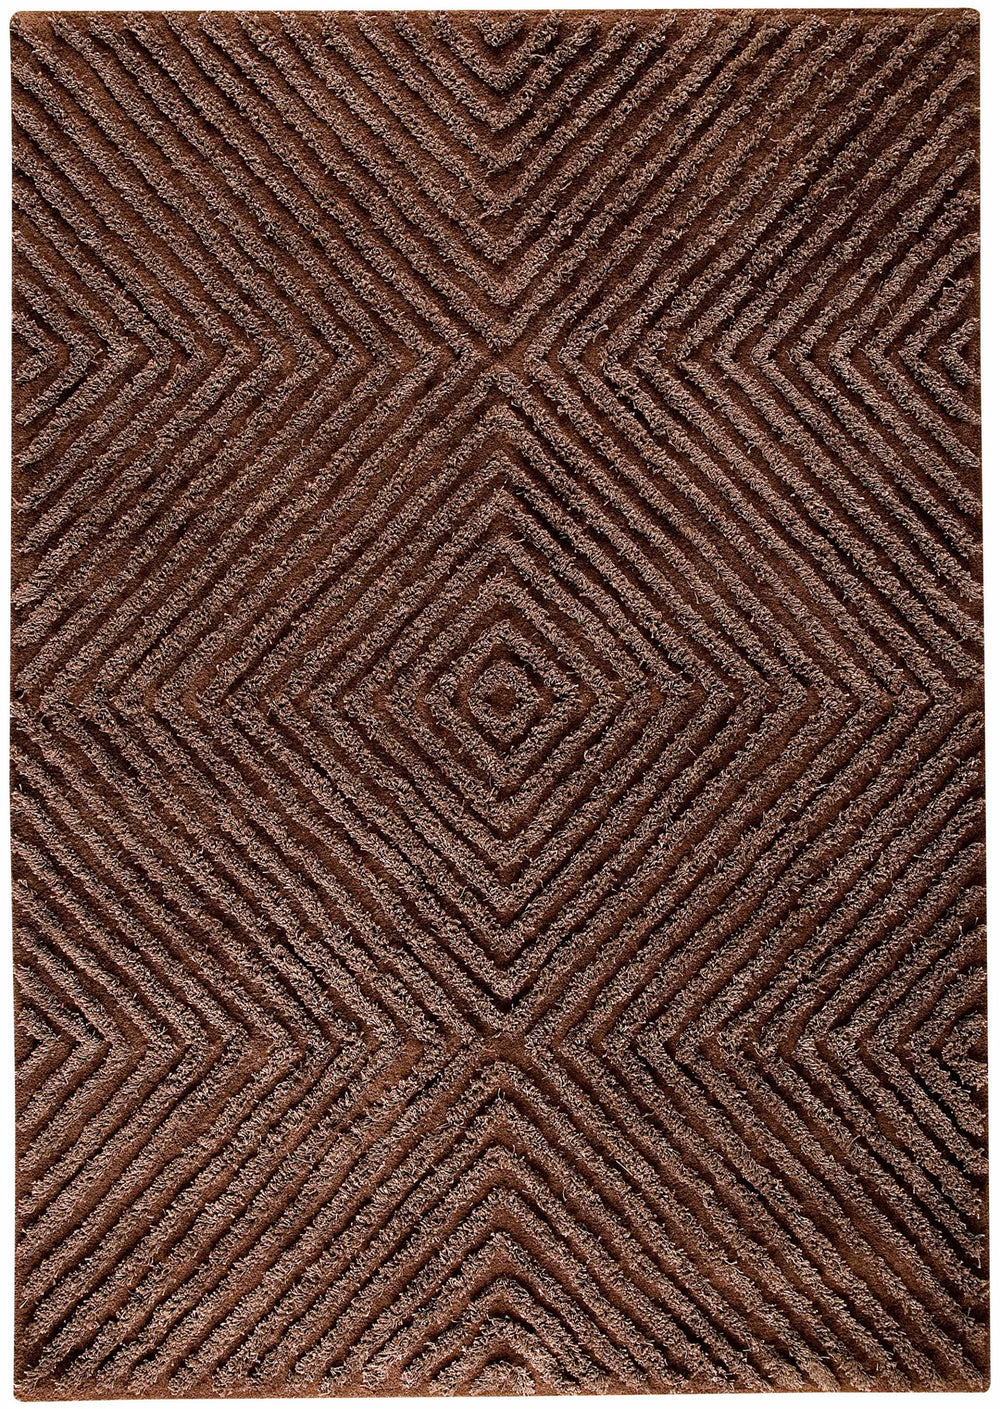 MAT The Basics 18WLT Buffalo Area Rug